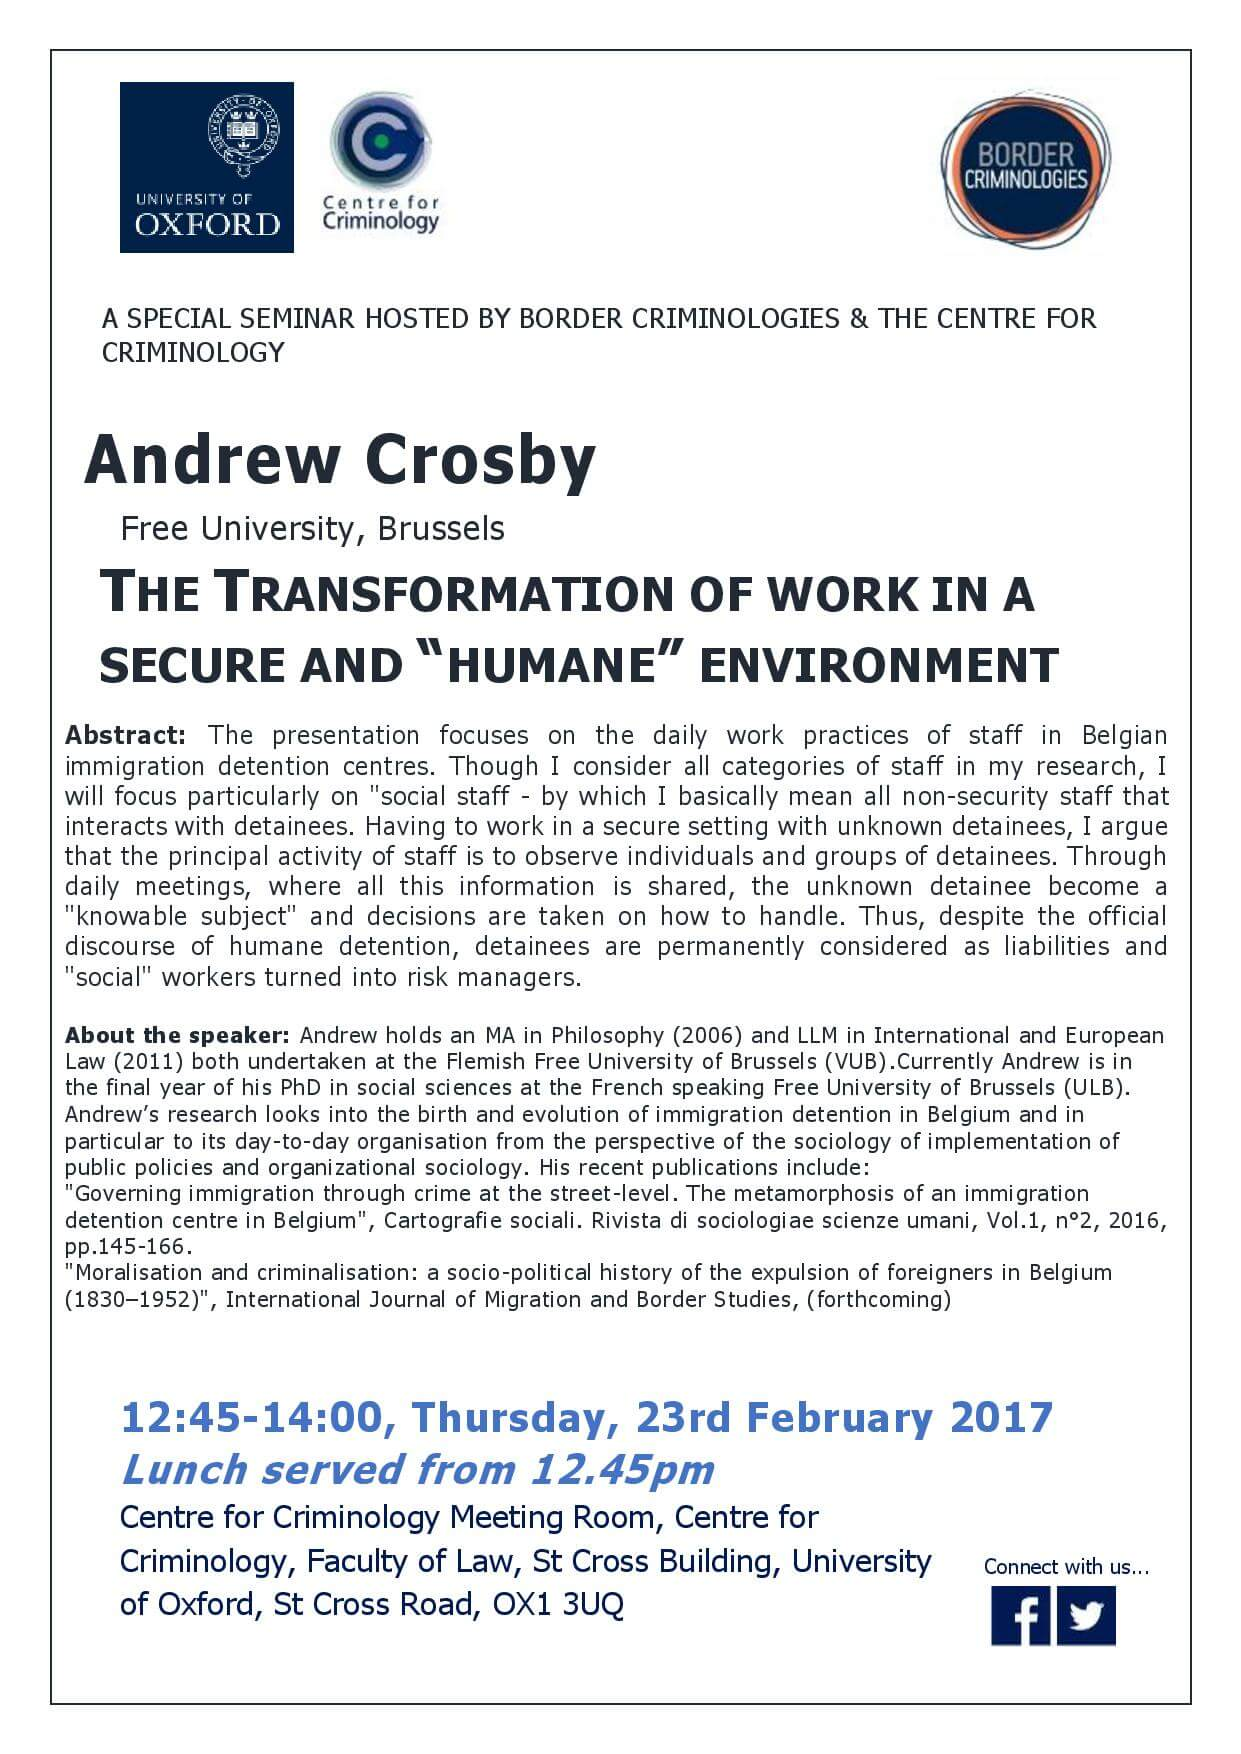 """Border Criminlogies Seminar: The Transformation of Work in a Secure and """"Humane"""" Environment"""